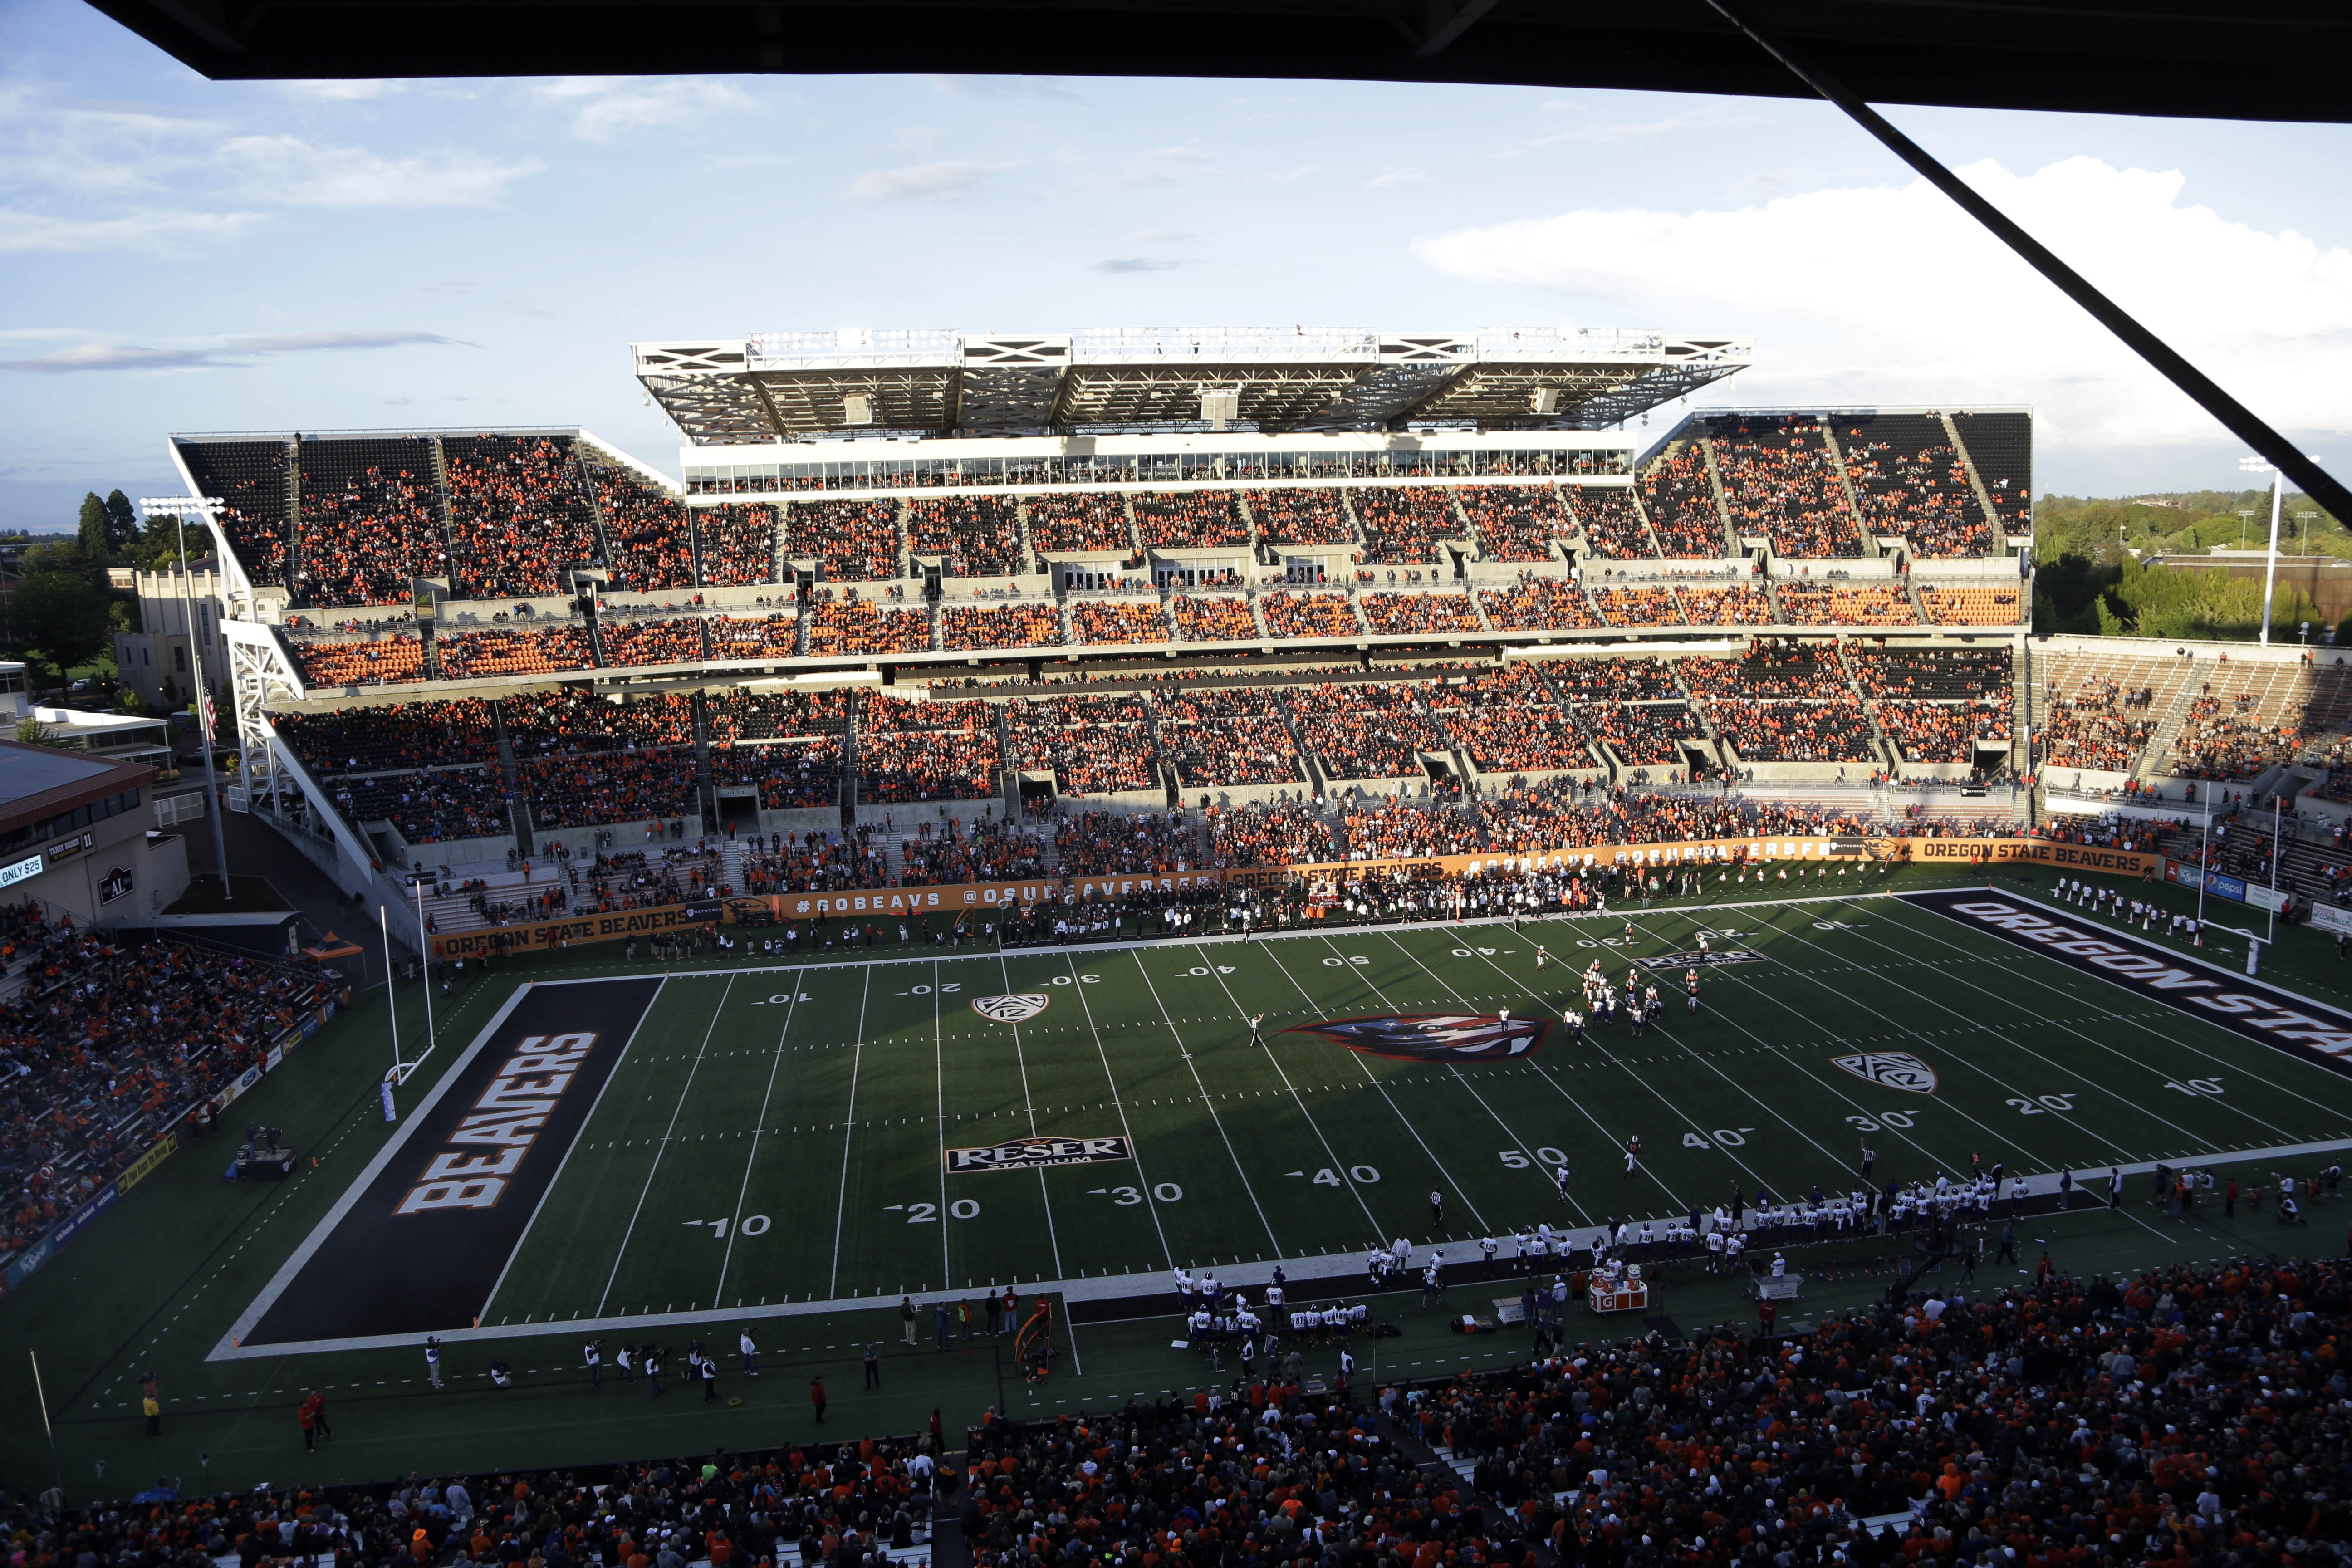 View of Reser Stadium is shown